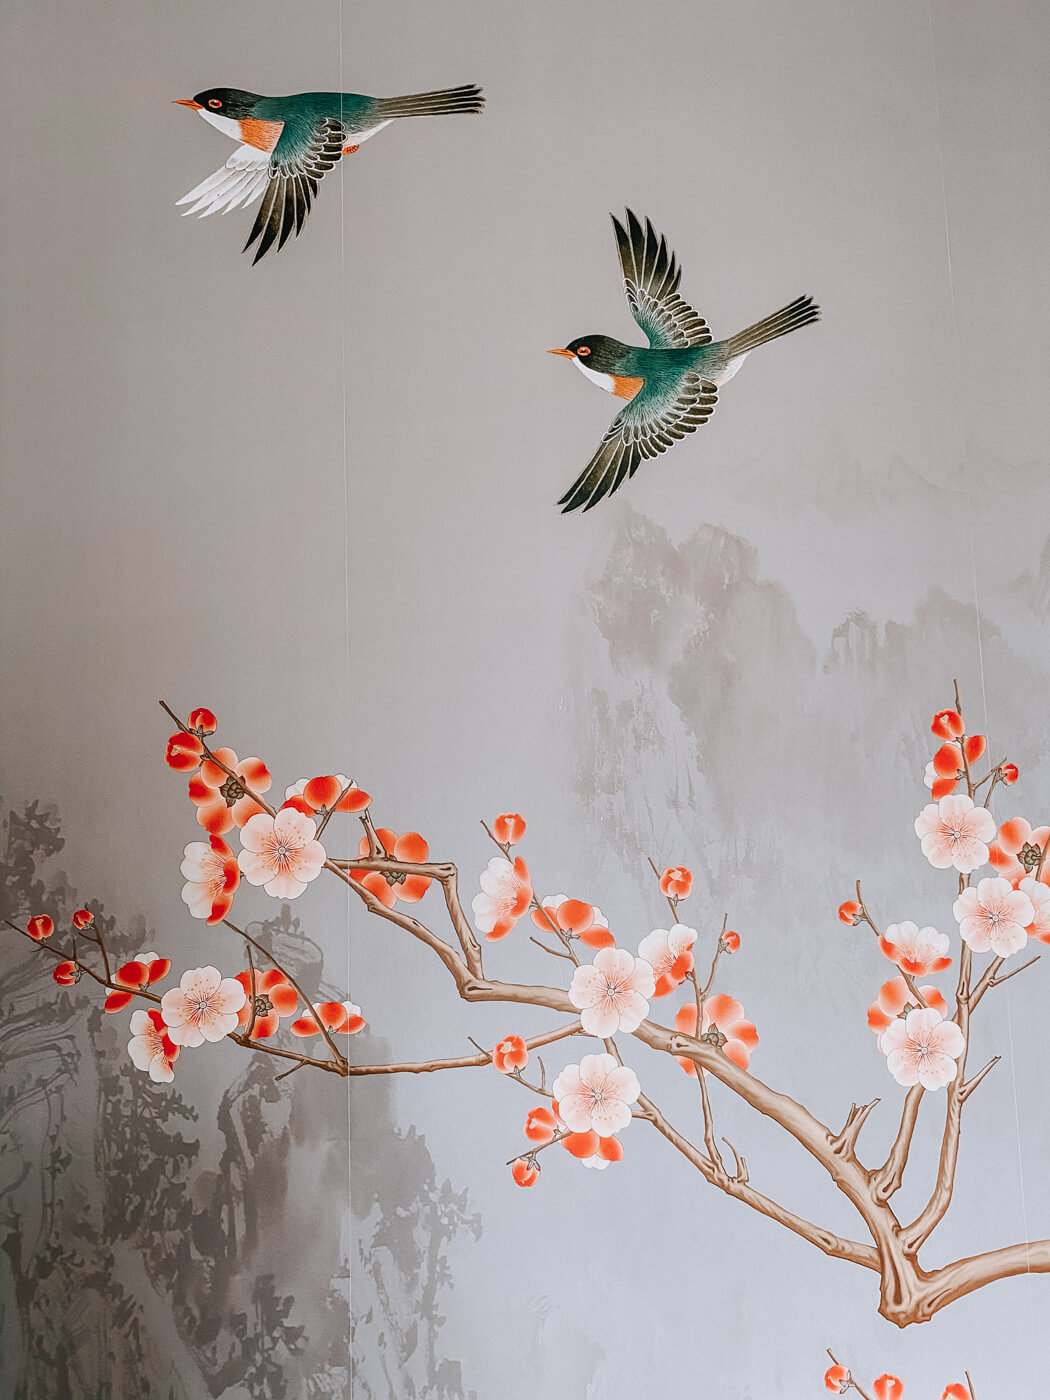 Photowall wallpaper Birds heights - Pearly bird and blossom closeup